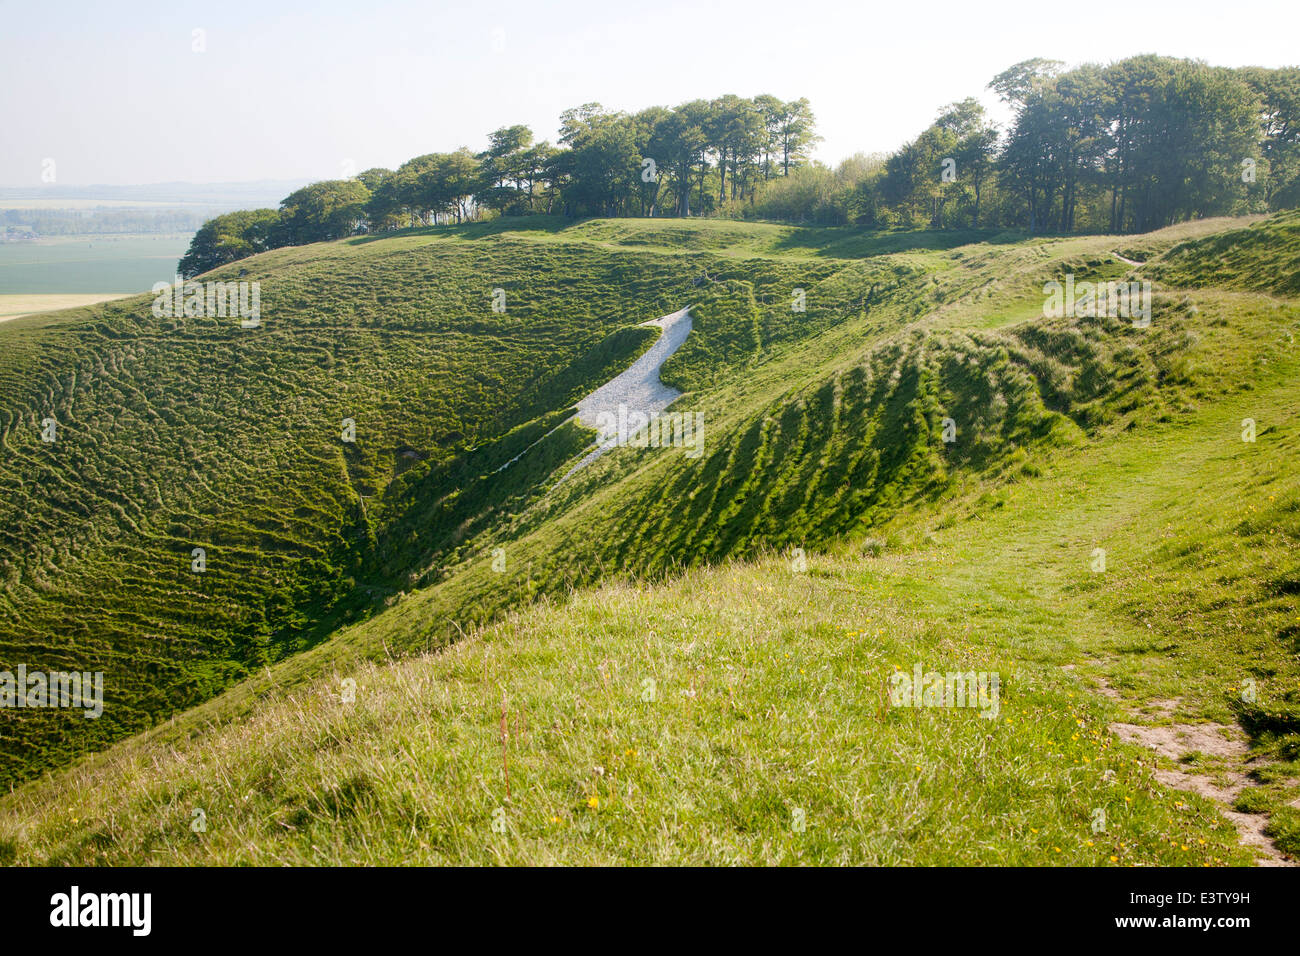 White horse in chalk scarp slope Cherhill, Wiltshire, England dating form 1780 - Stock Image